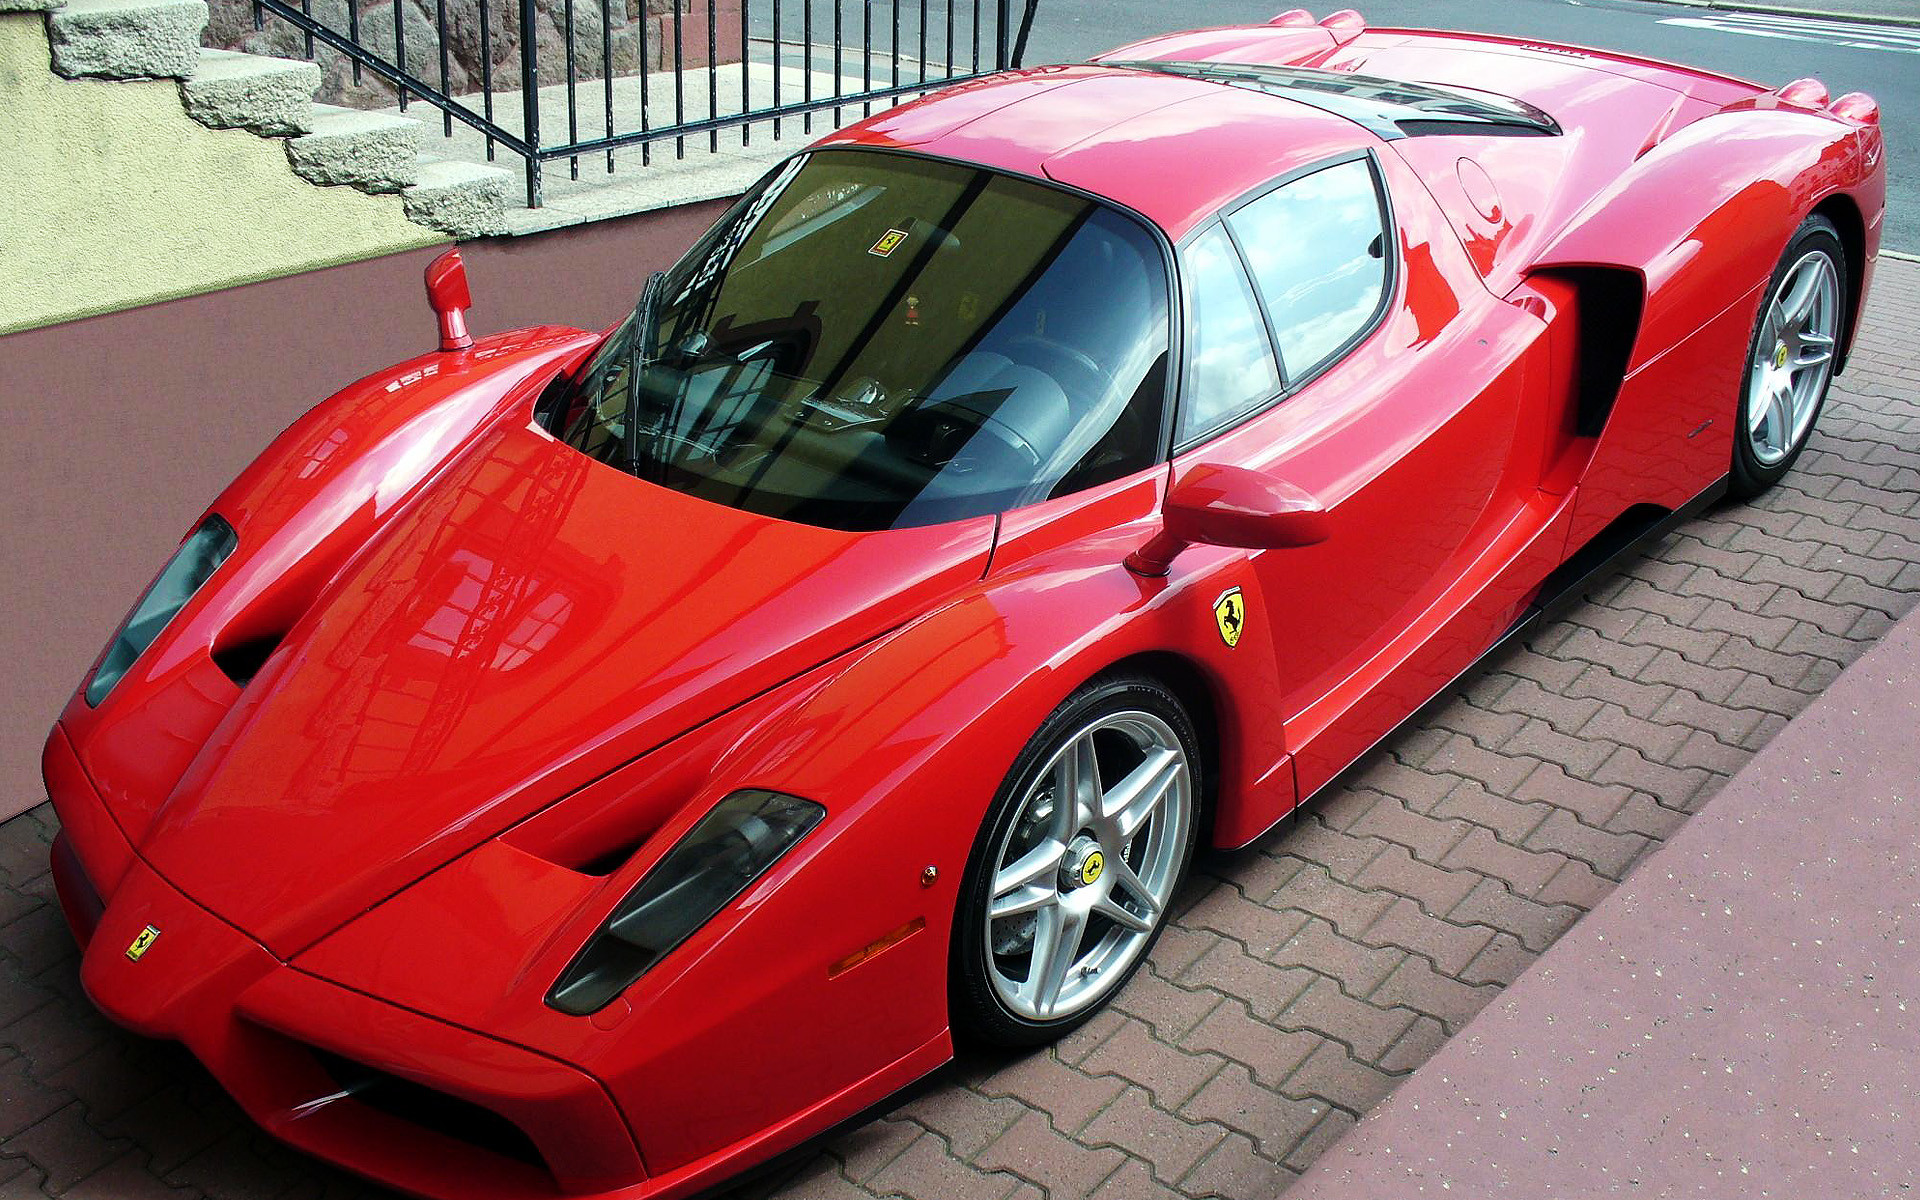 1920x1200 Download Ferrari Enzo Wallpaper Now